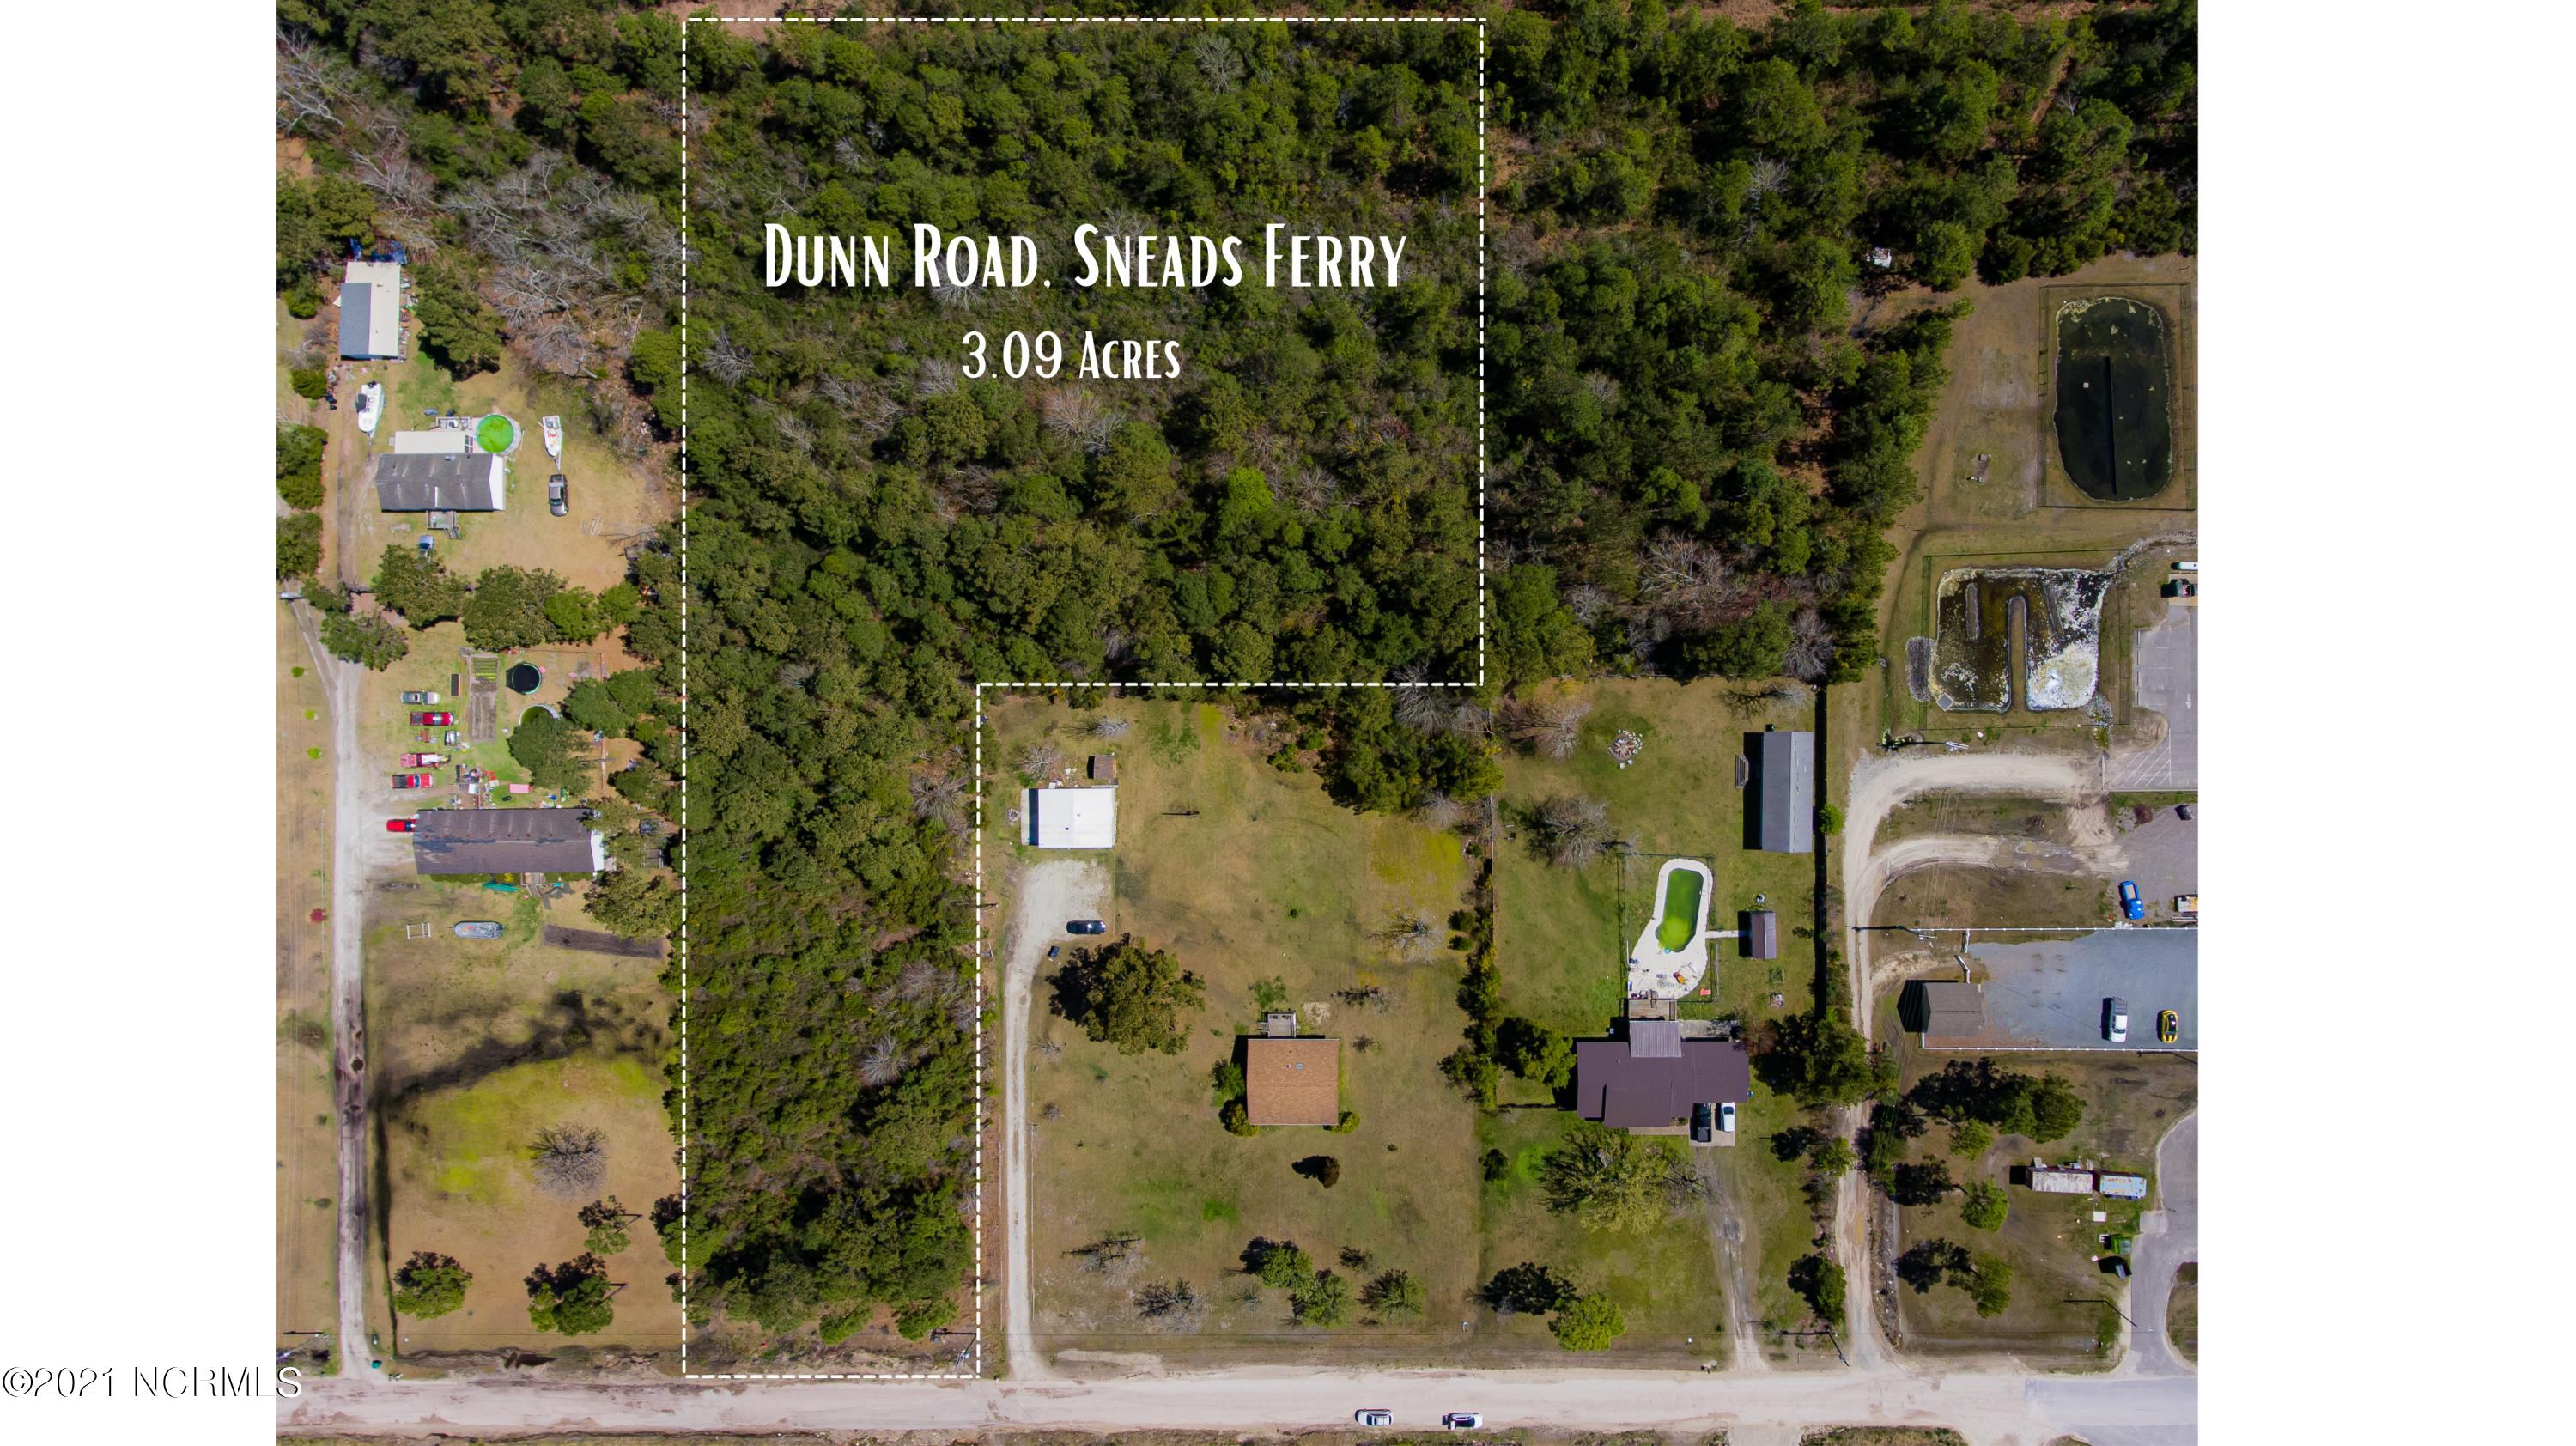 Over 3 FULL ACRES in Sneads Ferry! With a lot this size you are sure to have space and privacy. Located just 5 miles to Topsail Island, Camp Lejeune, and Stone Bay! Enjoy NO HOA or city taxes. Dunn Road is a private & unpaved road.